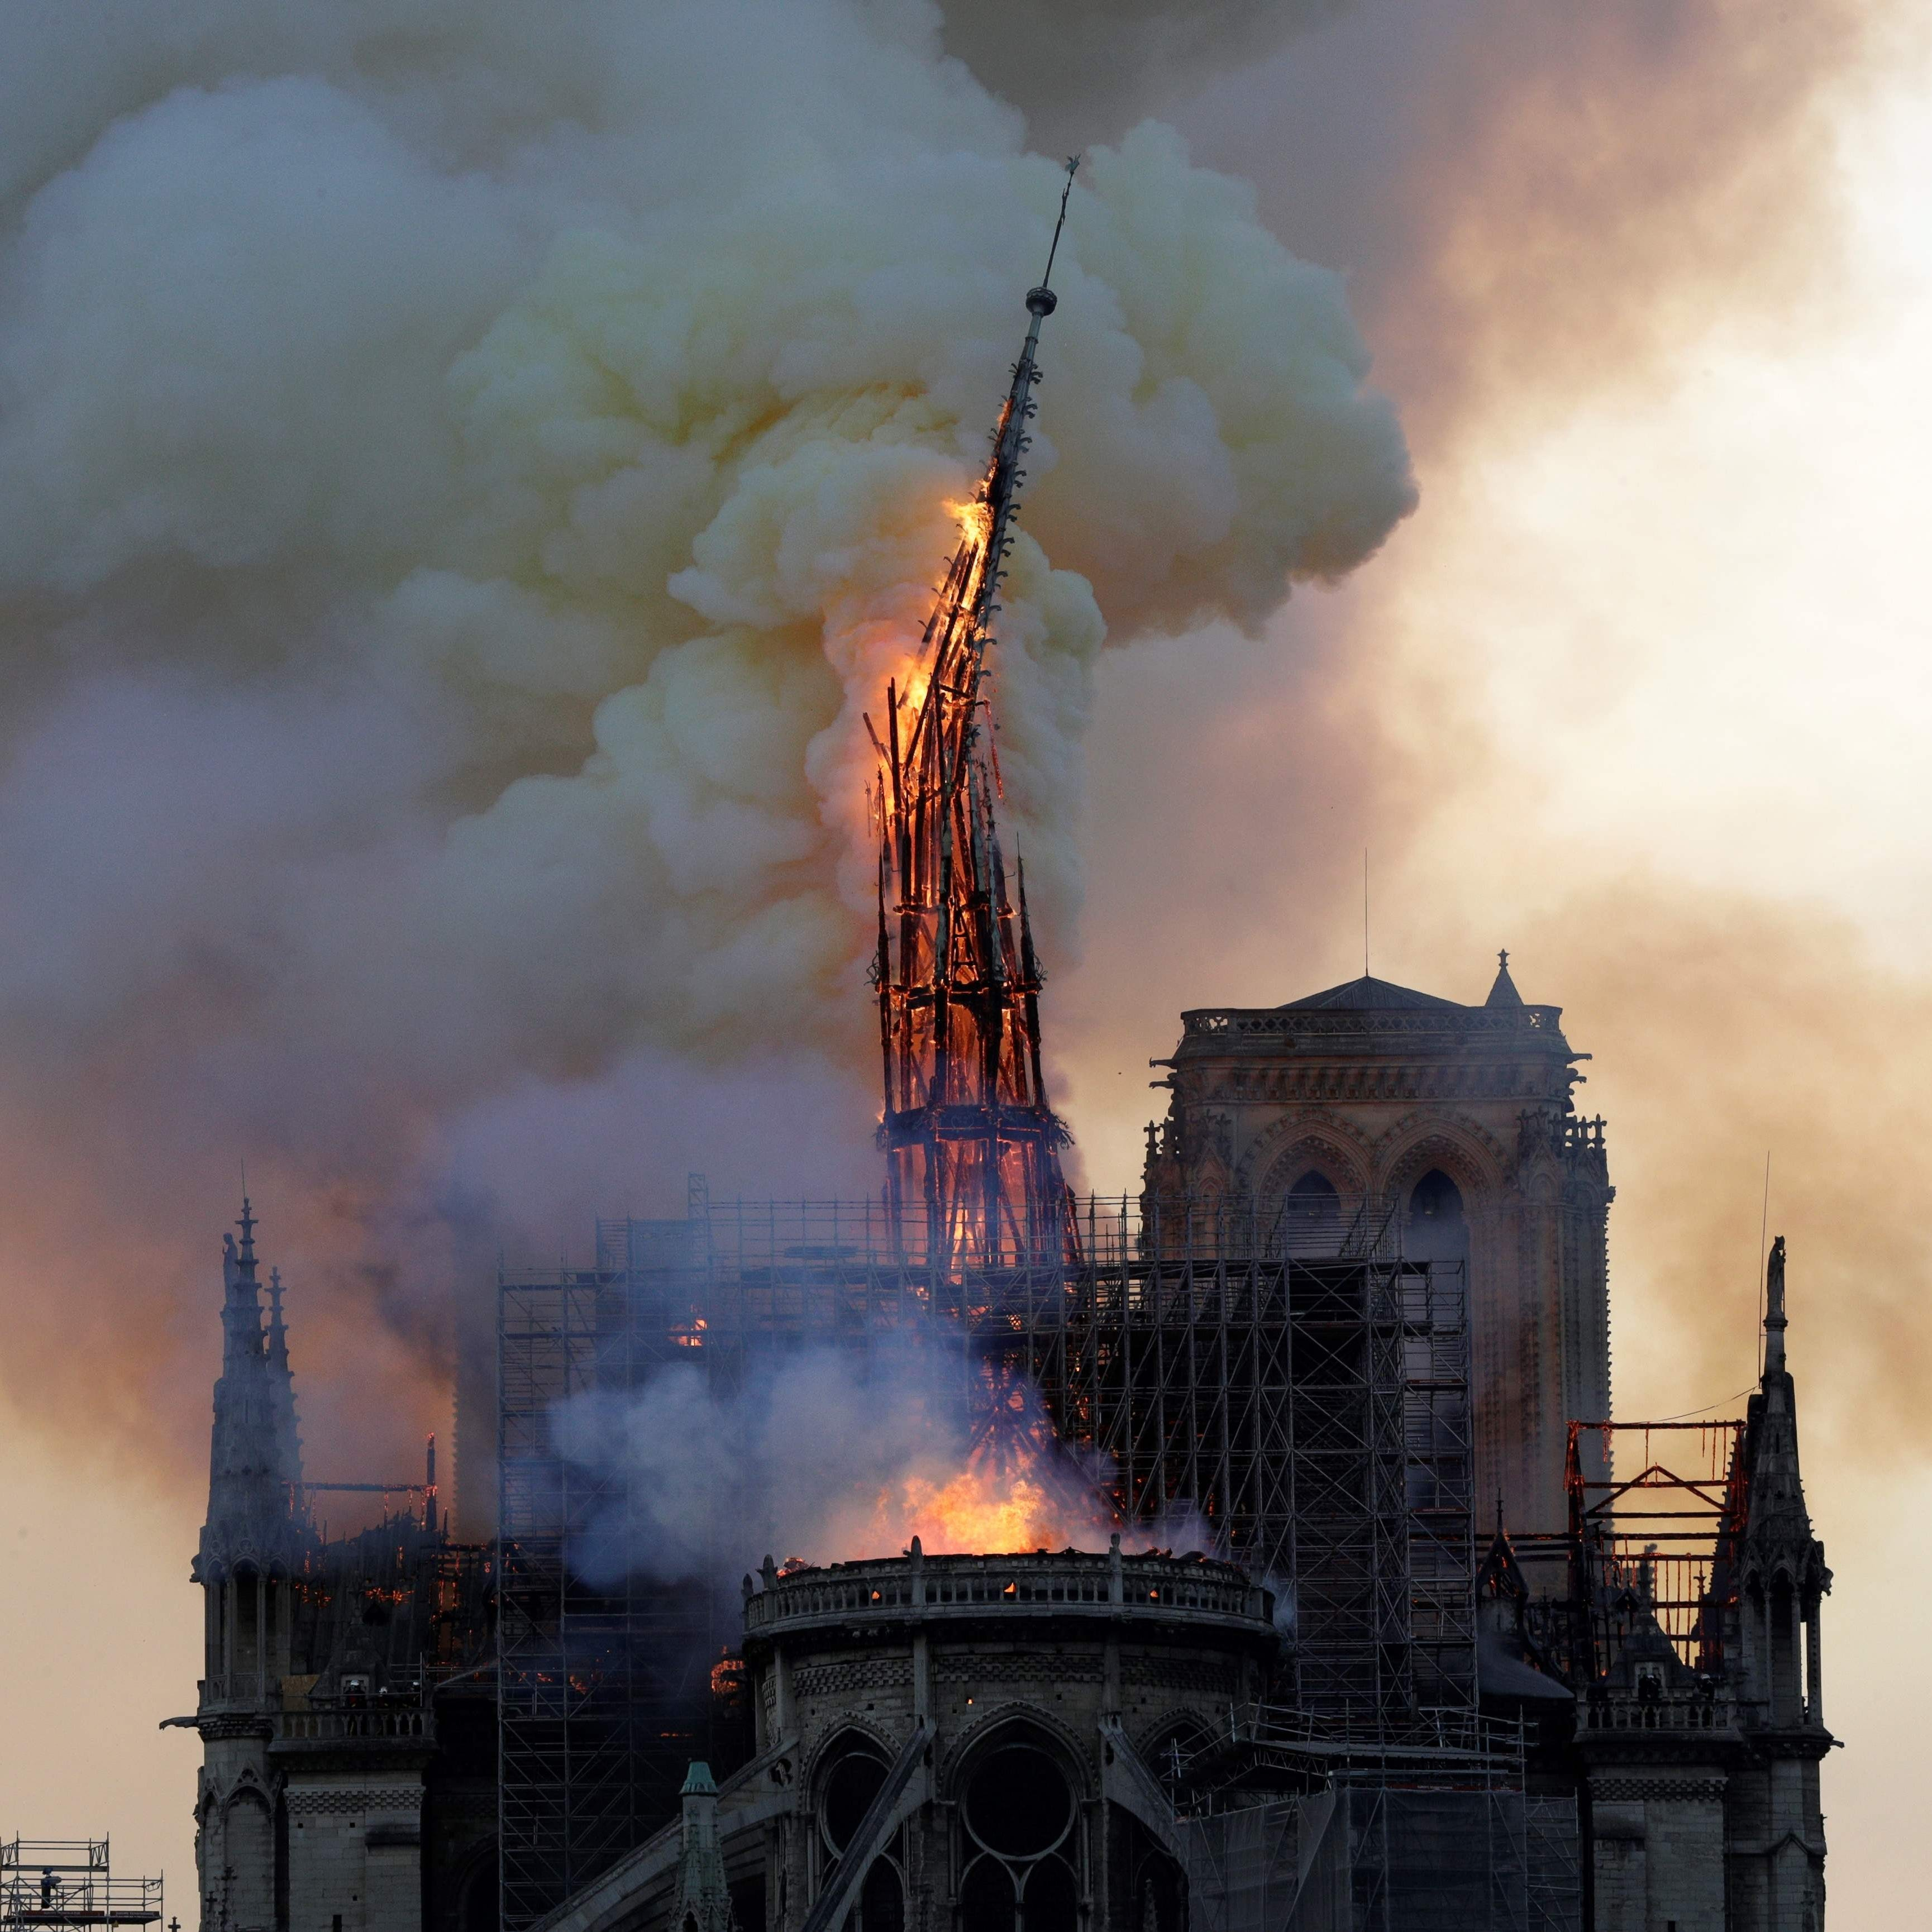 The steeple of the landmark Notre-Dame Cathedral collapses as the cathedral is engulfed in flames in central Paris on April 15, 2019.